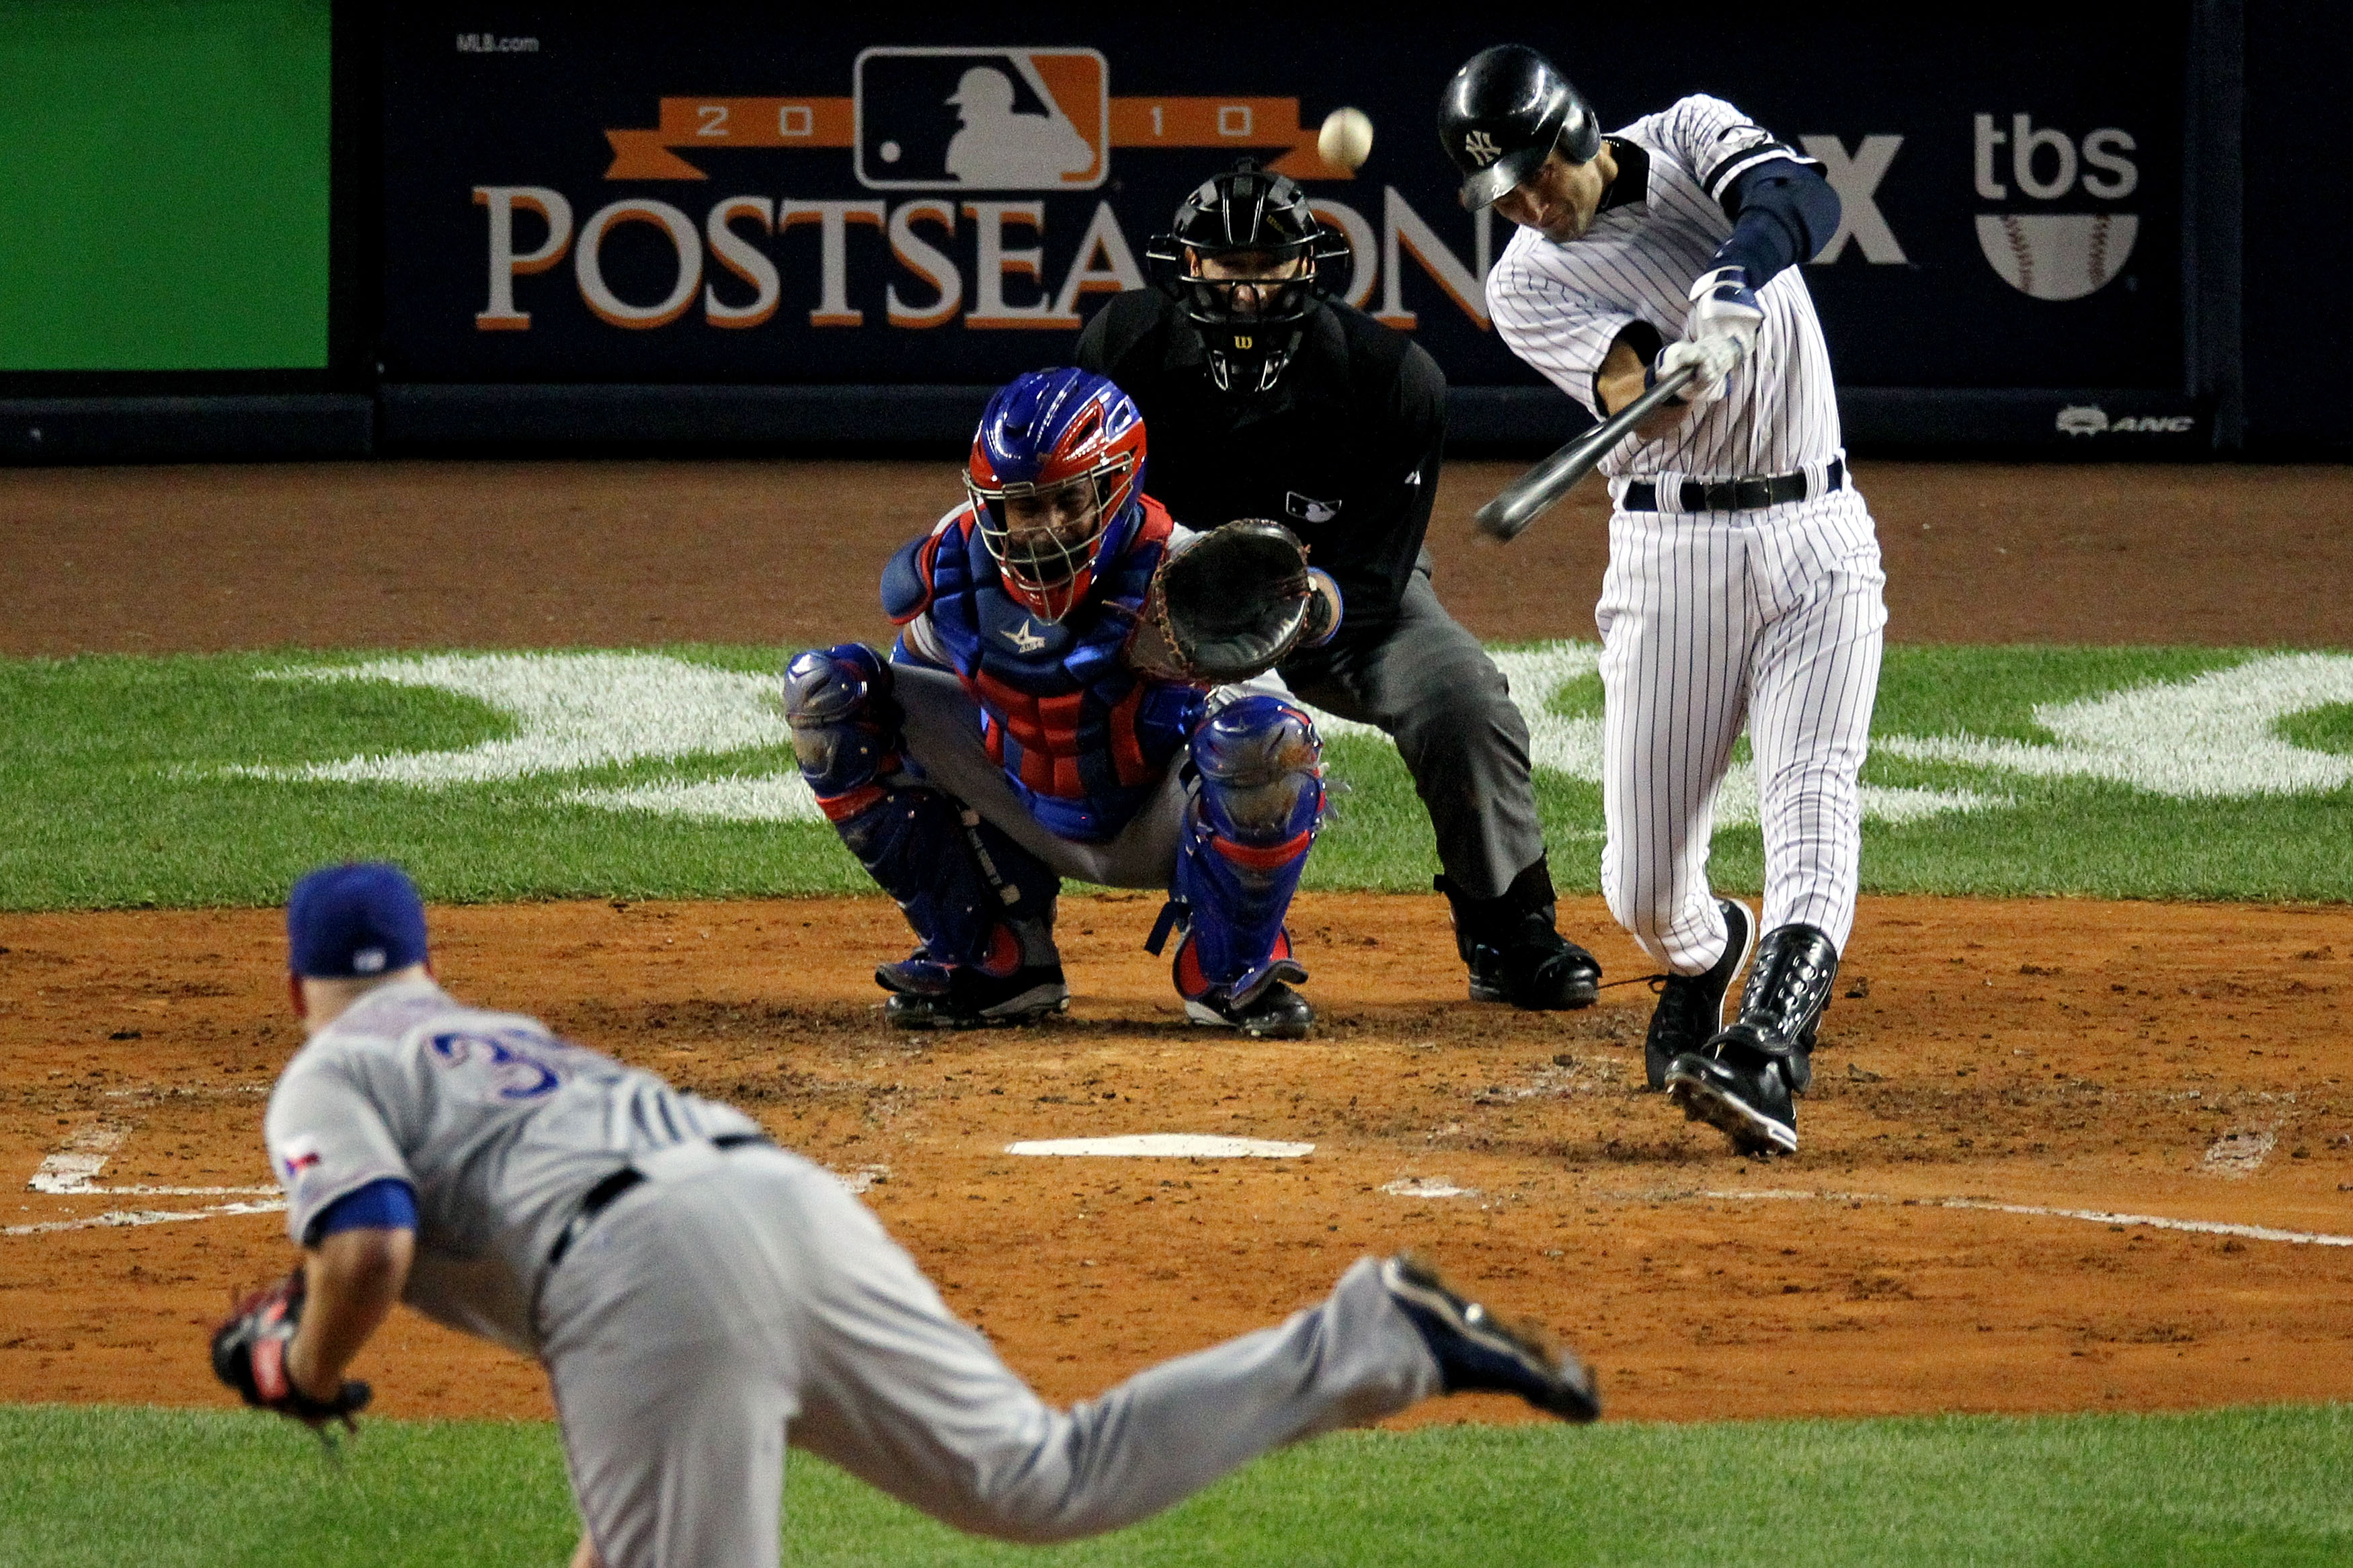 NEW YORK - OCTOBER 19:  Derek Jeter #2 of the New York Yankees hits a triple in the third inning against Tommy Hunter #35 of the Texas Rangers in Game Four of the ALCS during the 2010 MLB Playoffs at Yankee Stadium on October 19, 2010 in the Bronx borough